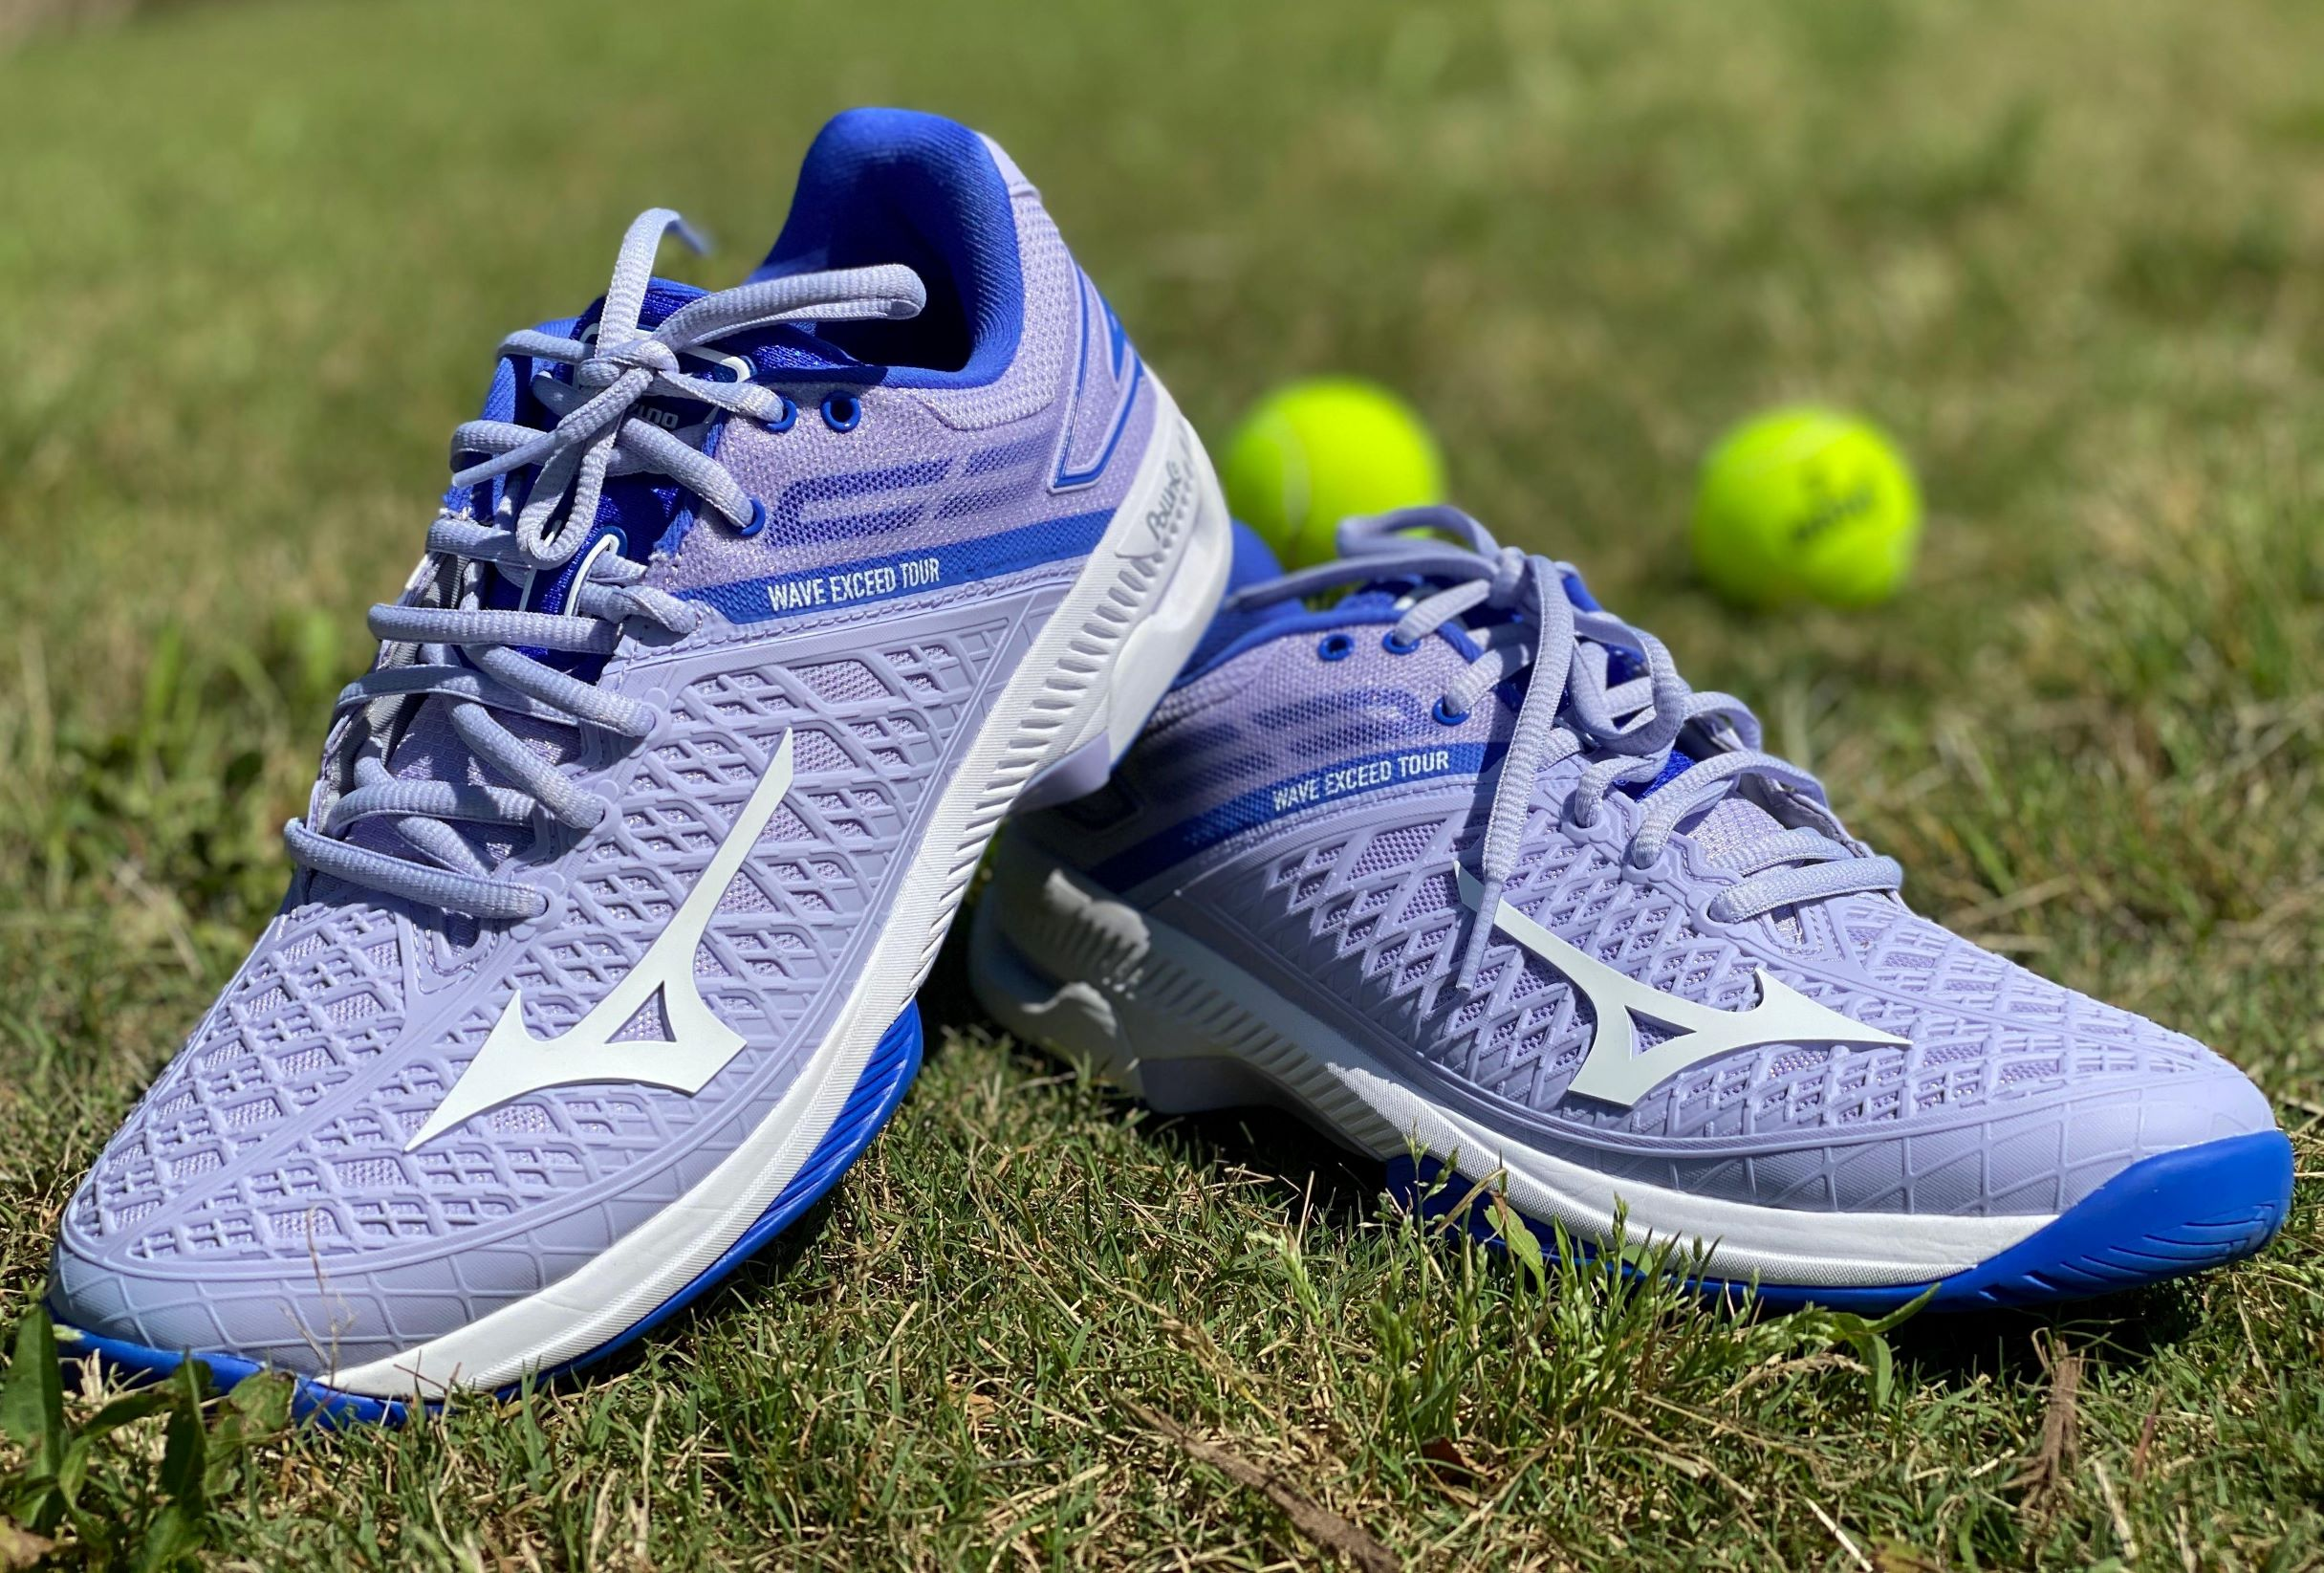 Onward and Upward: Mizuno Women's Wave Exceed Tour 4 AC Shoe Review